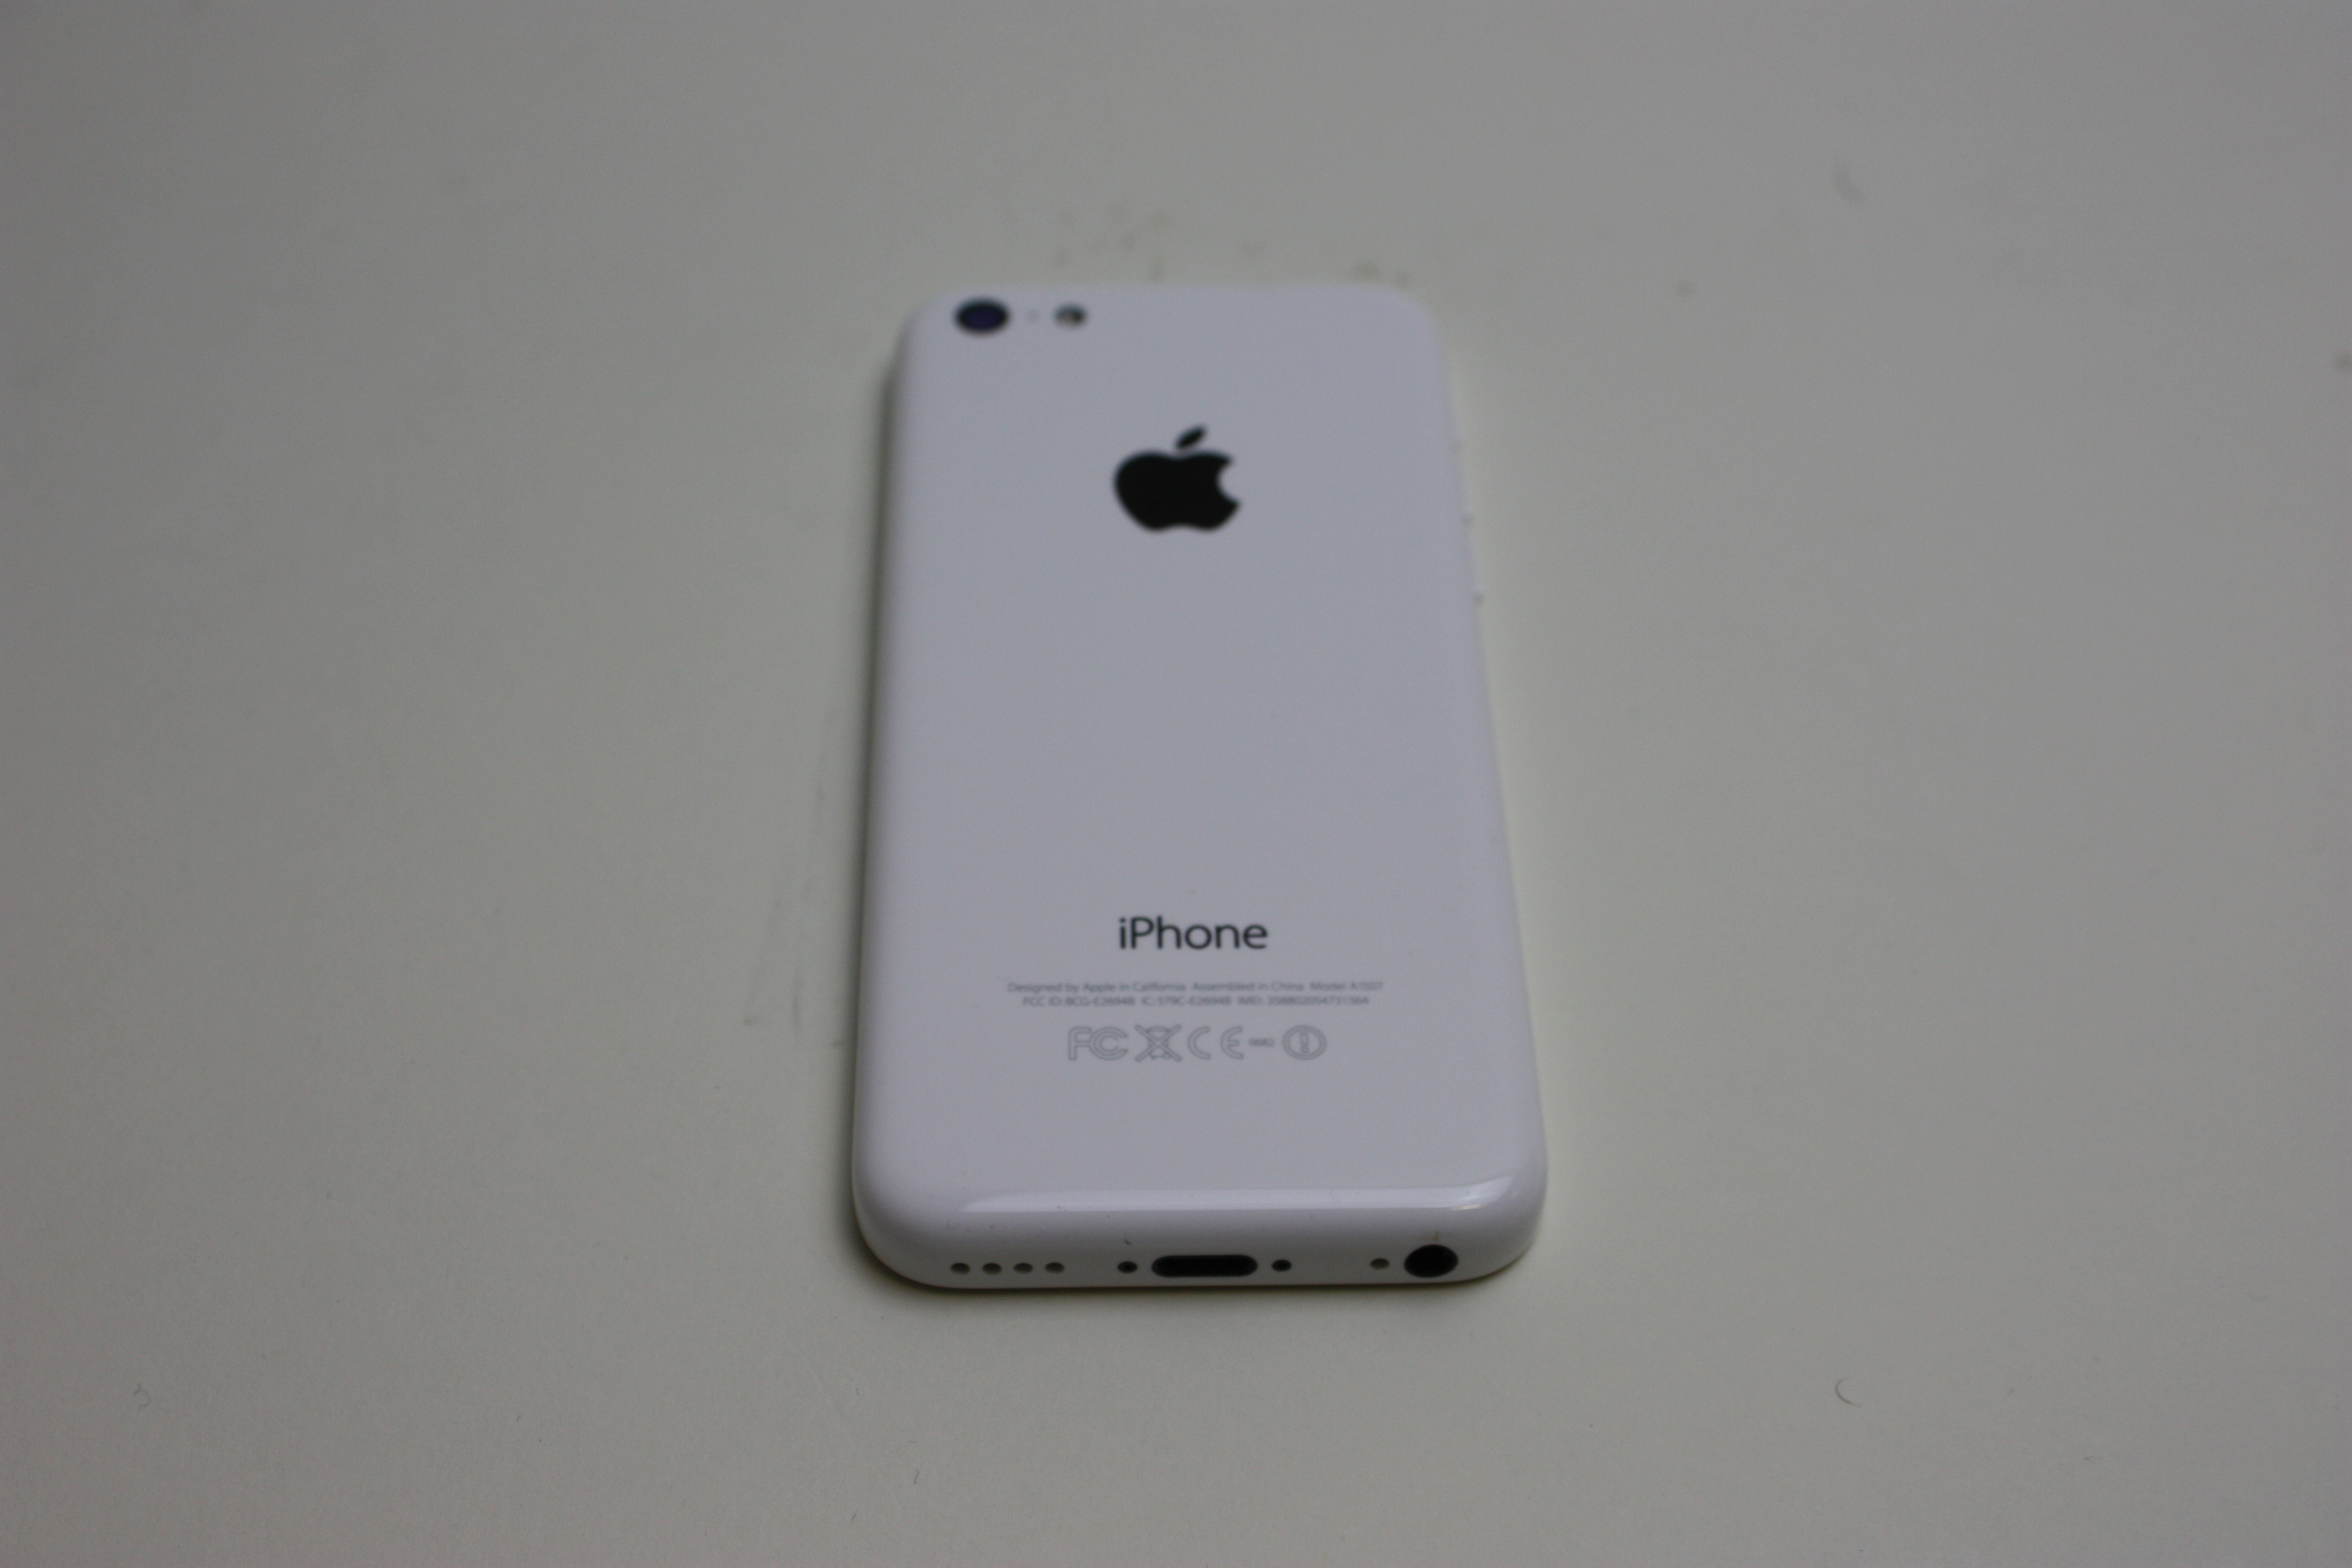 iPhone 5c, 8 GB, White, Product age: 35 months, image 2